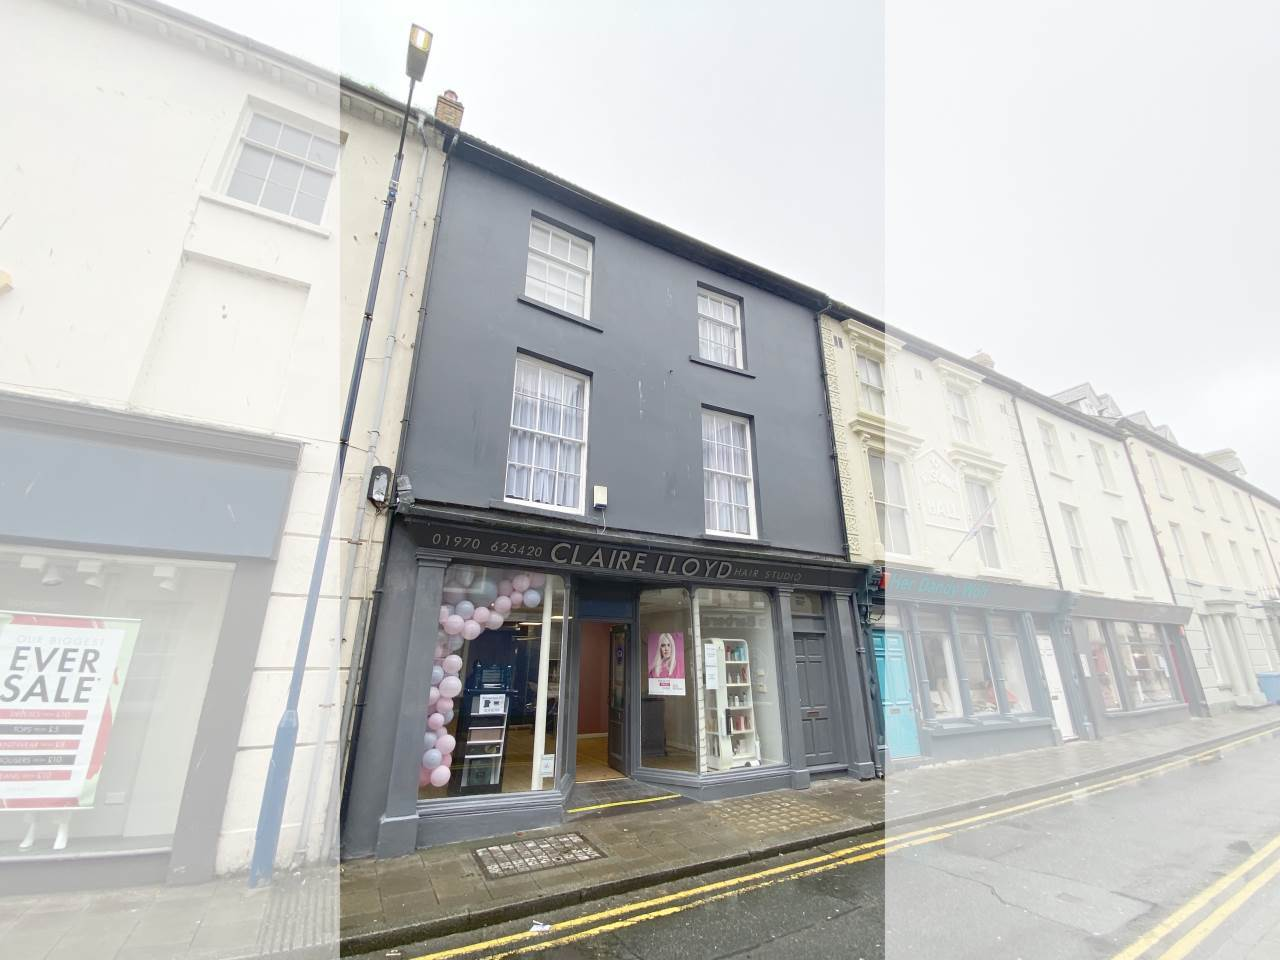 1 bed house / flat share to rent in Market Street, Aberystwyth, SY23